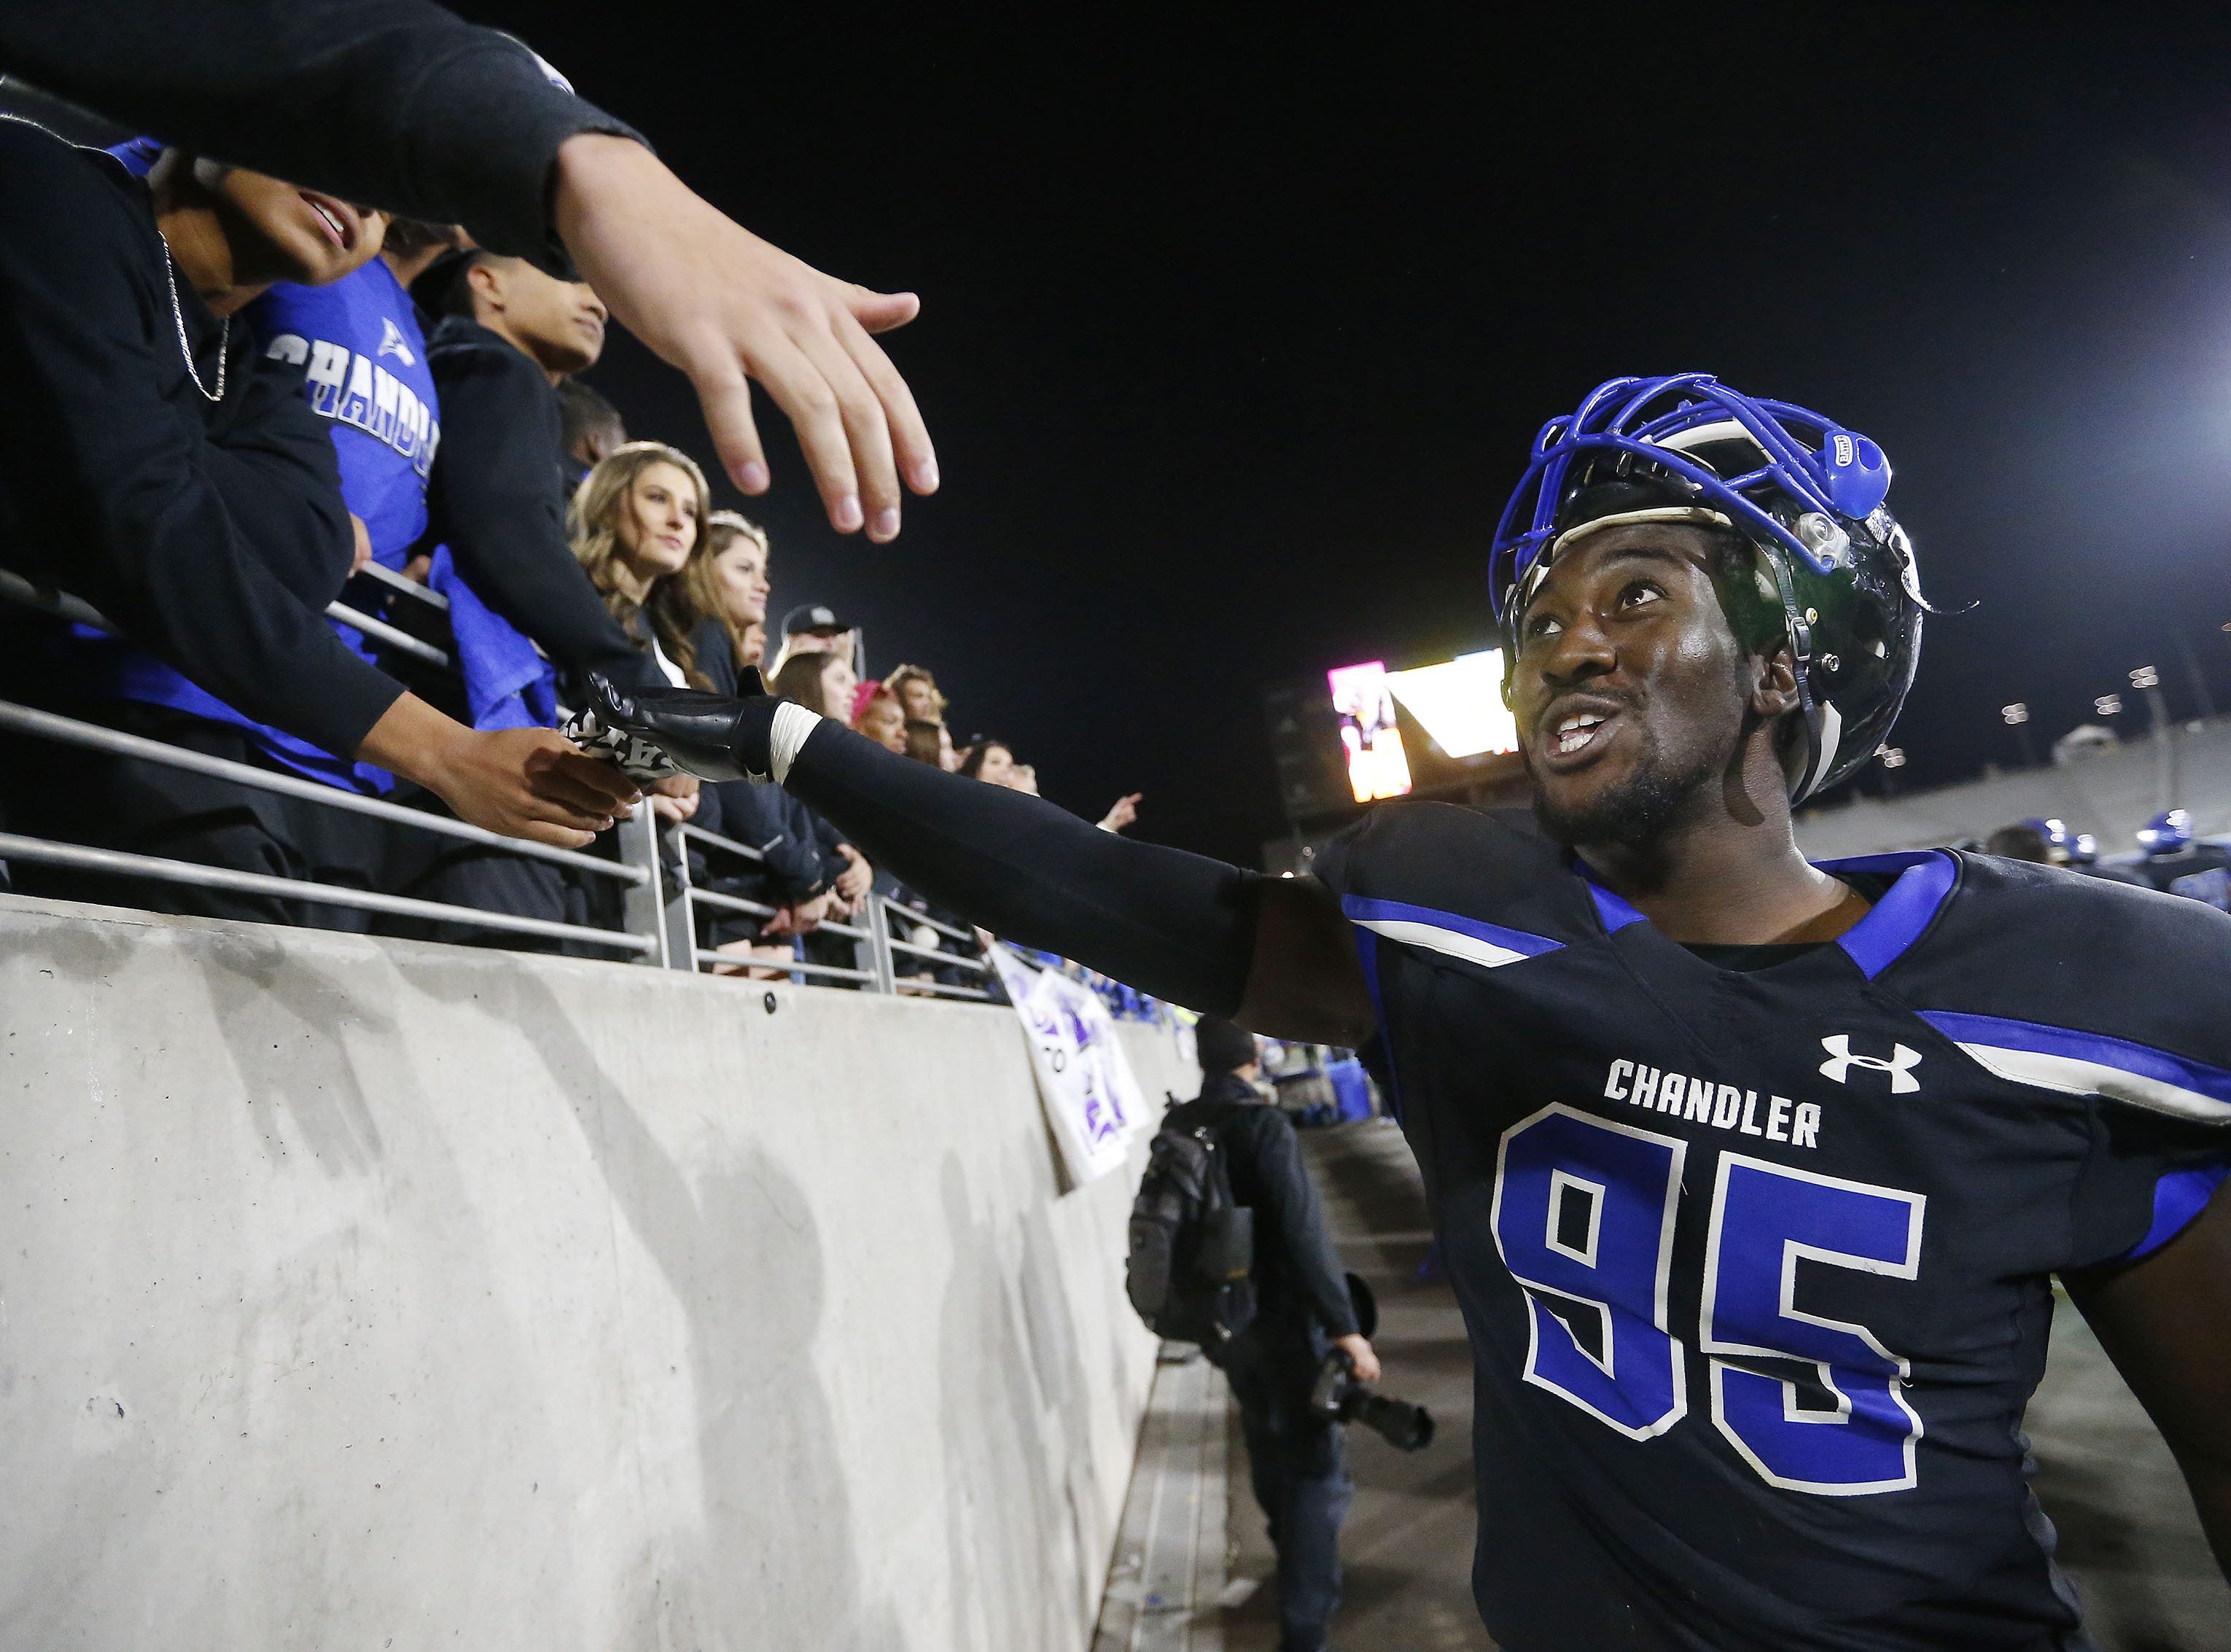 Chandler defensive lineman Miles McNair (95) celebrates with fans during their 65-28 win against Perry in the 6A state football championship game at Sun Devil Stadium December 1, 2018. #azhsfb